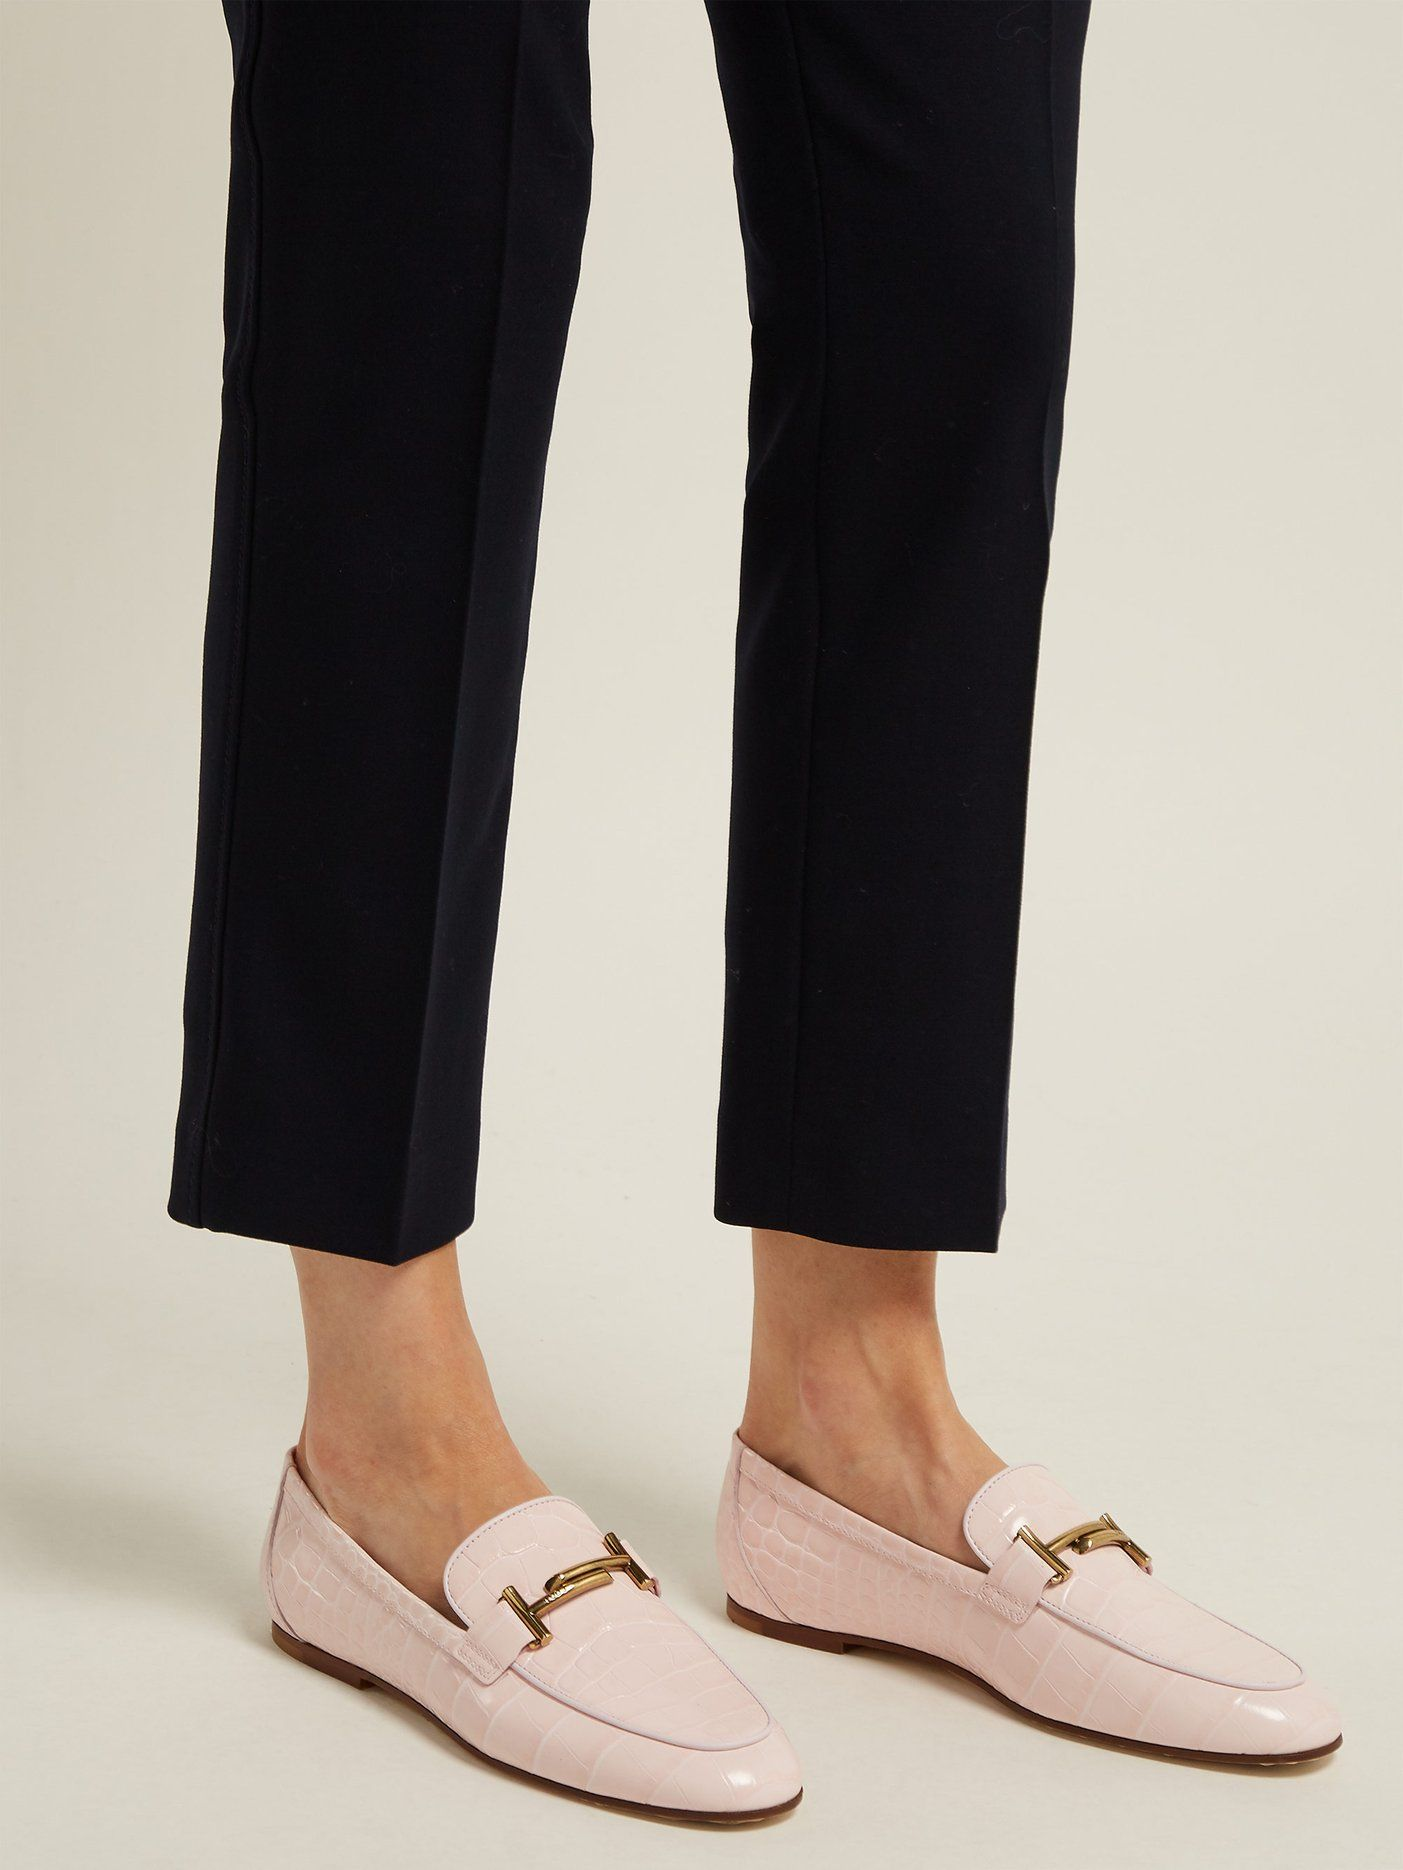 Matchesfashion Shoes Double LoafersTod's com T Leather SUVpzM